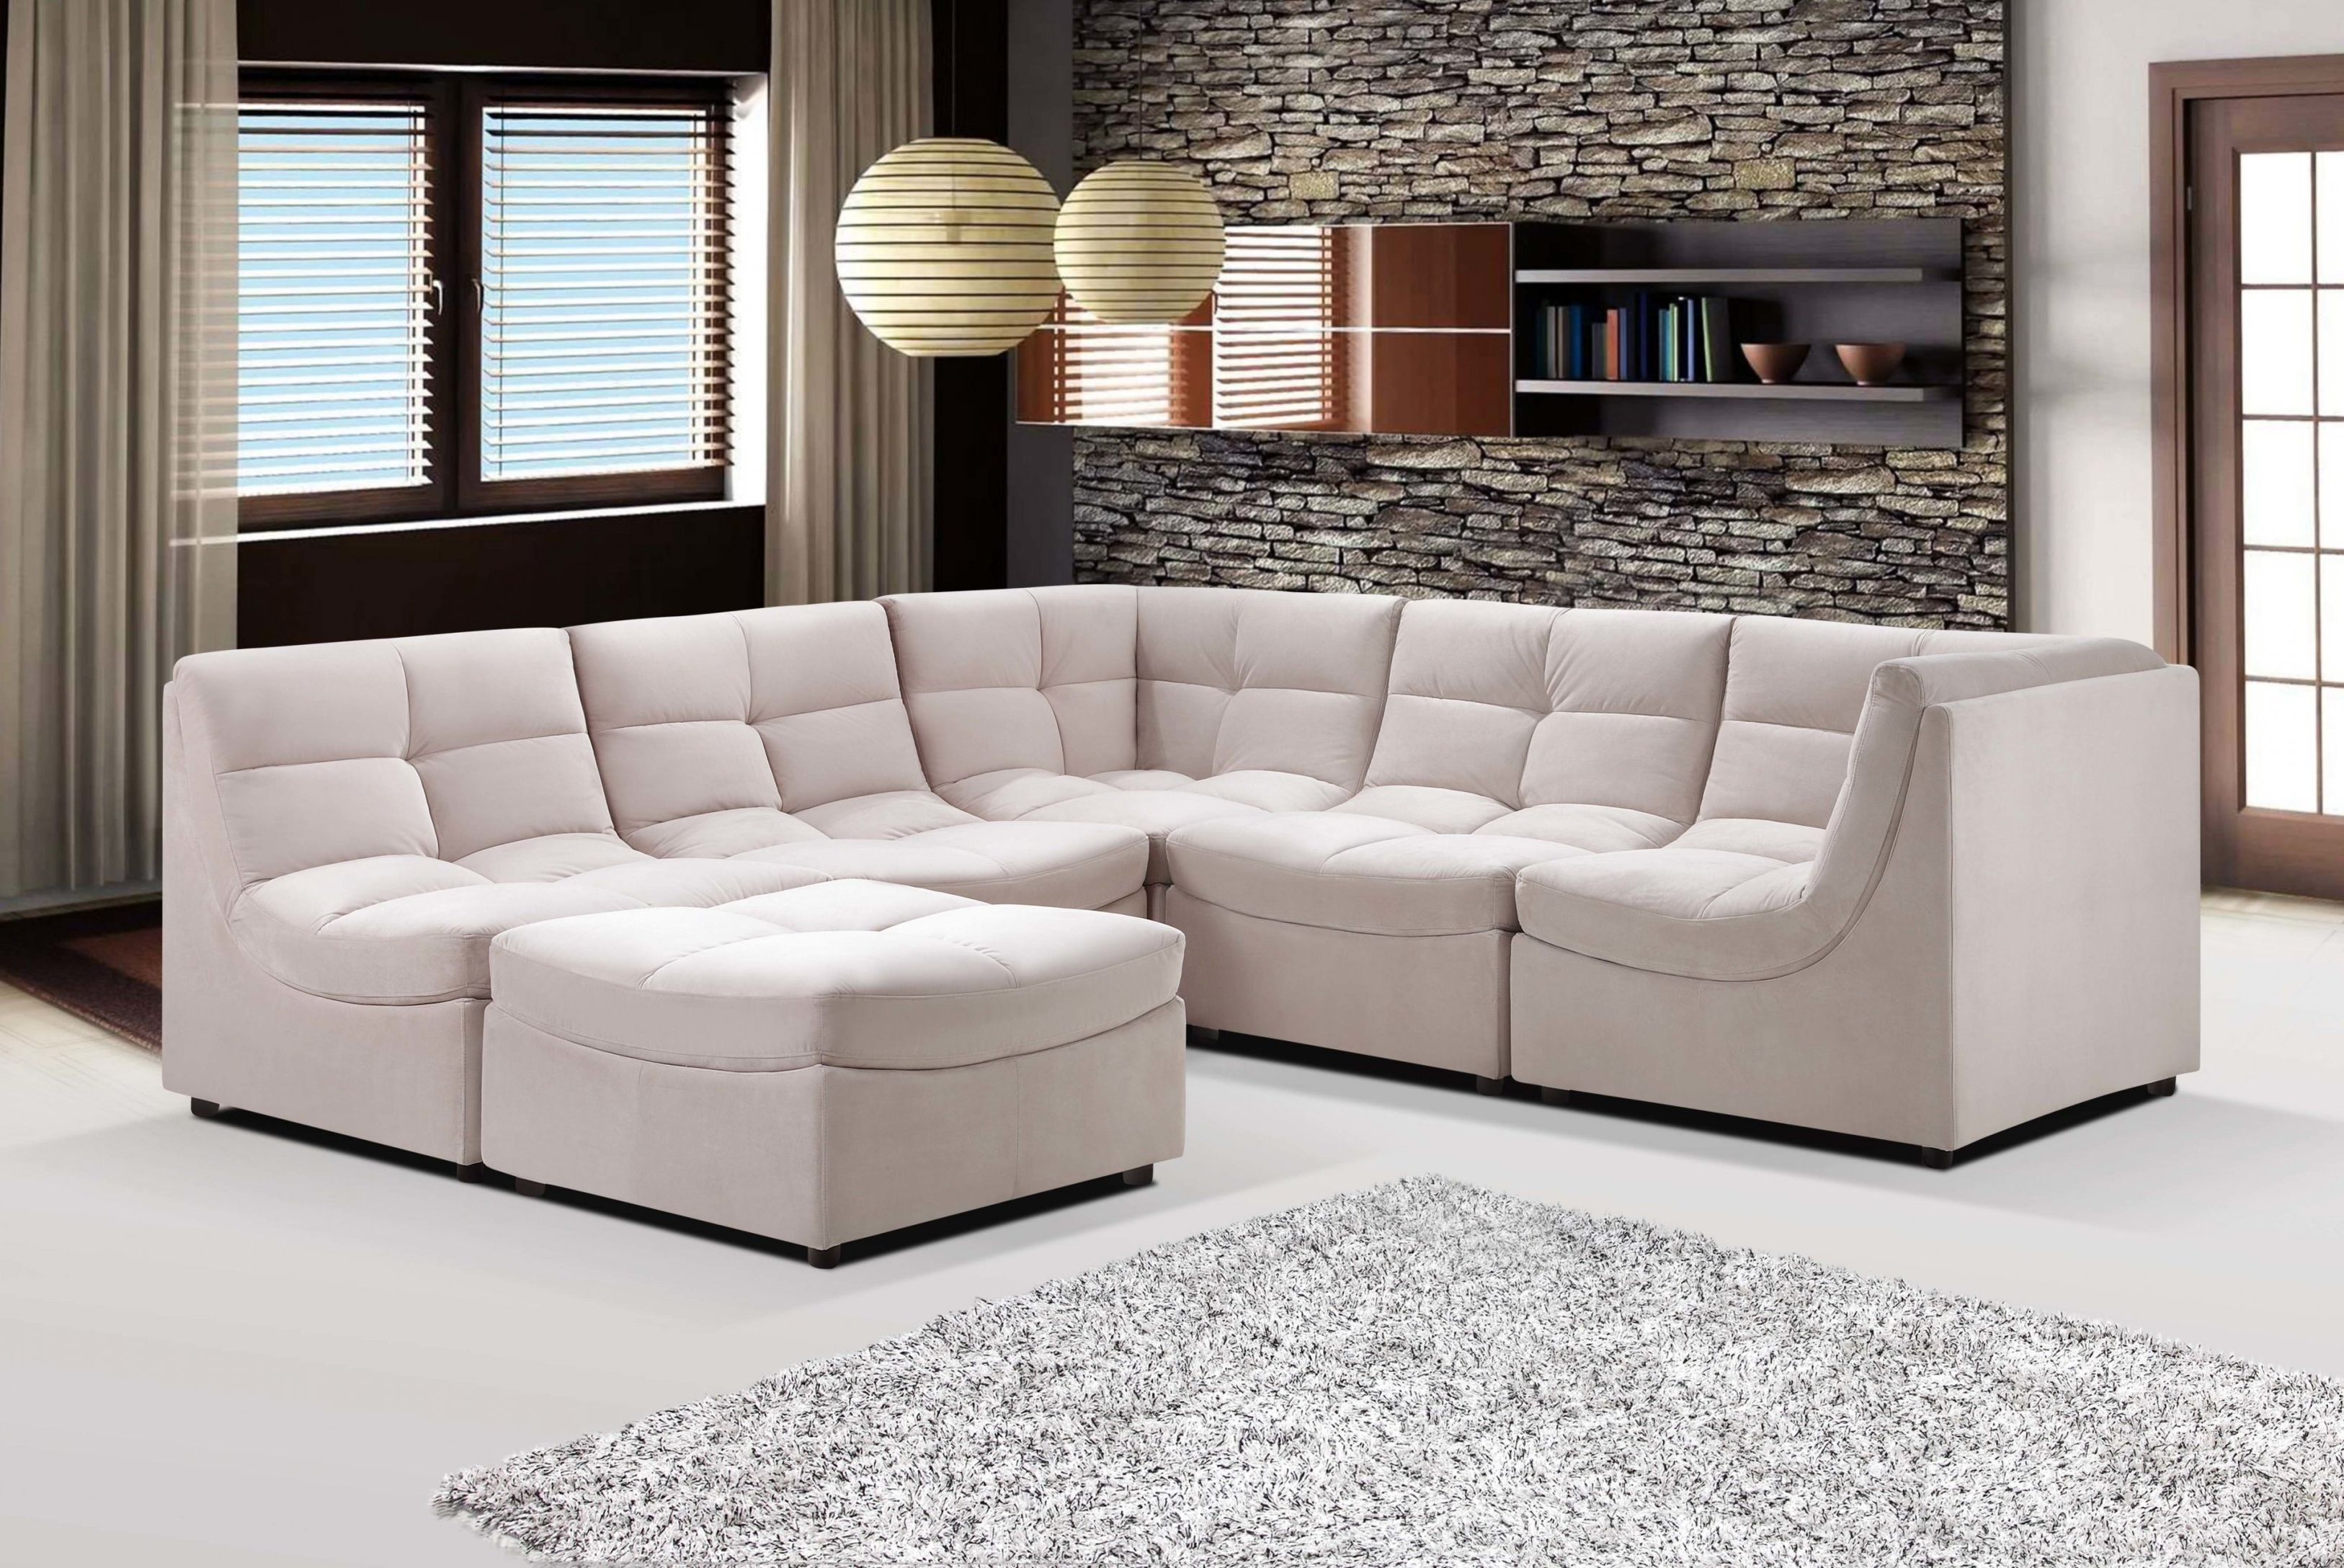 Latest Leather Modular Sectional Sofas Within Small Modular Sectional Sofa 21 For Your Sofa Sectionals For Cloud (View 6 of 20)